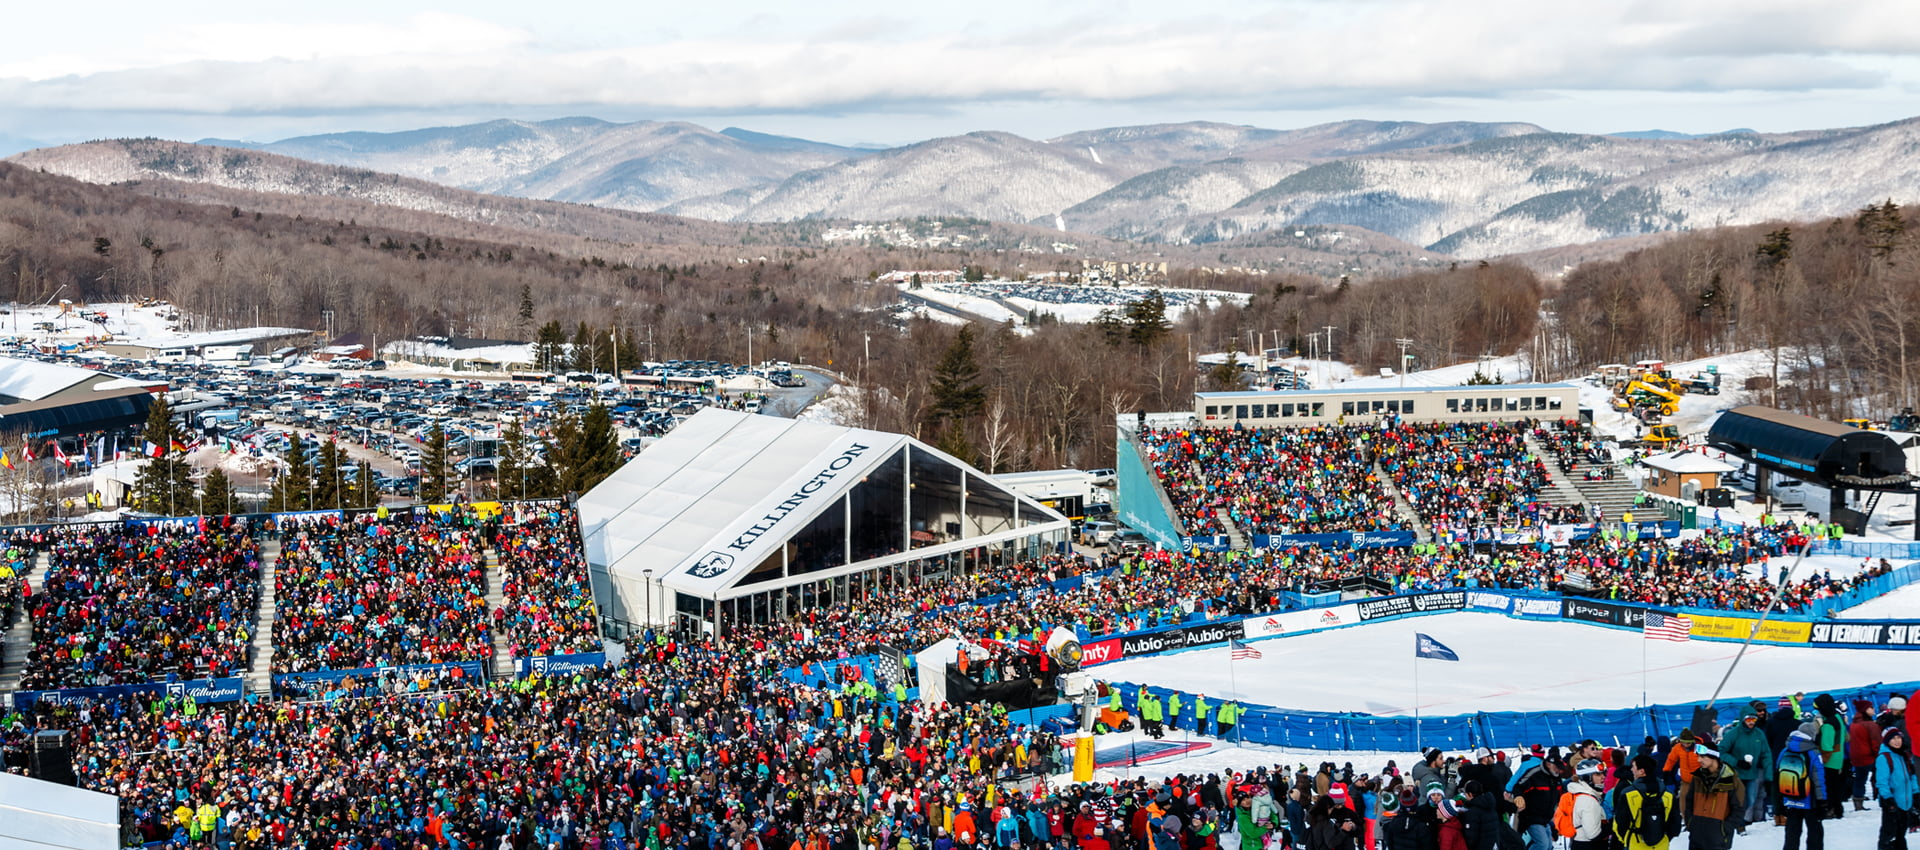 The crowd at the base of the slalom at the Killington World Cup. | Photo Courtesy of John Everett